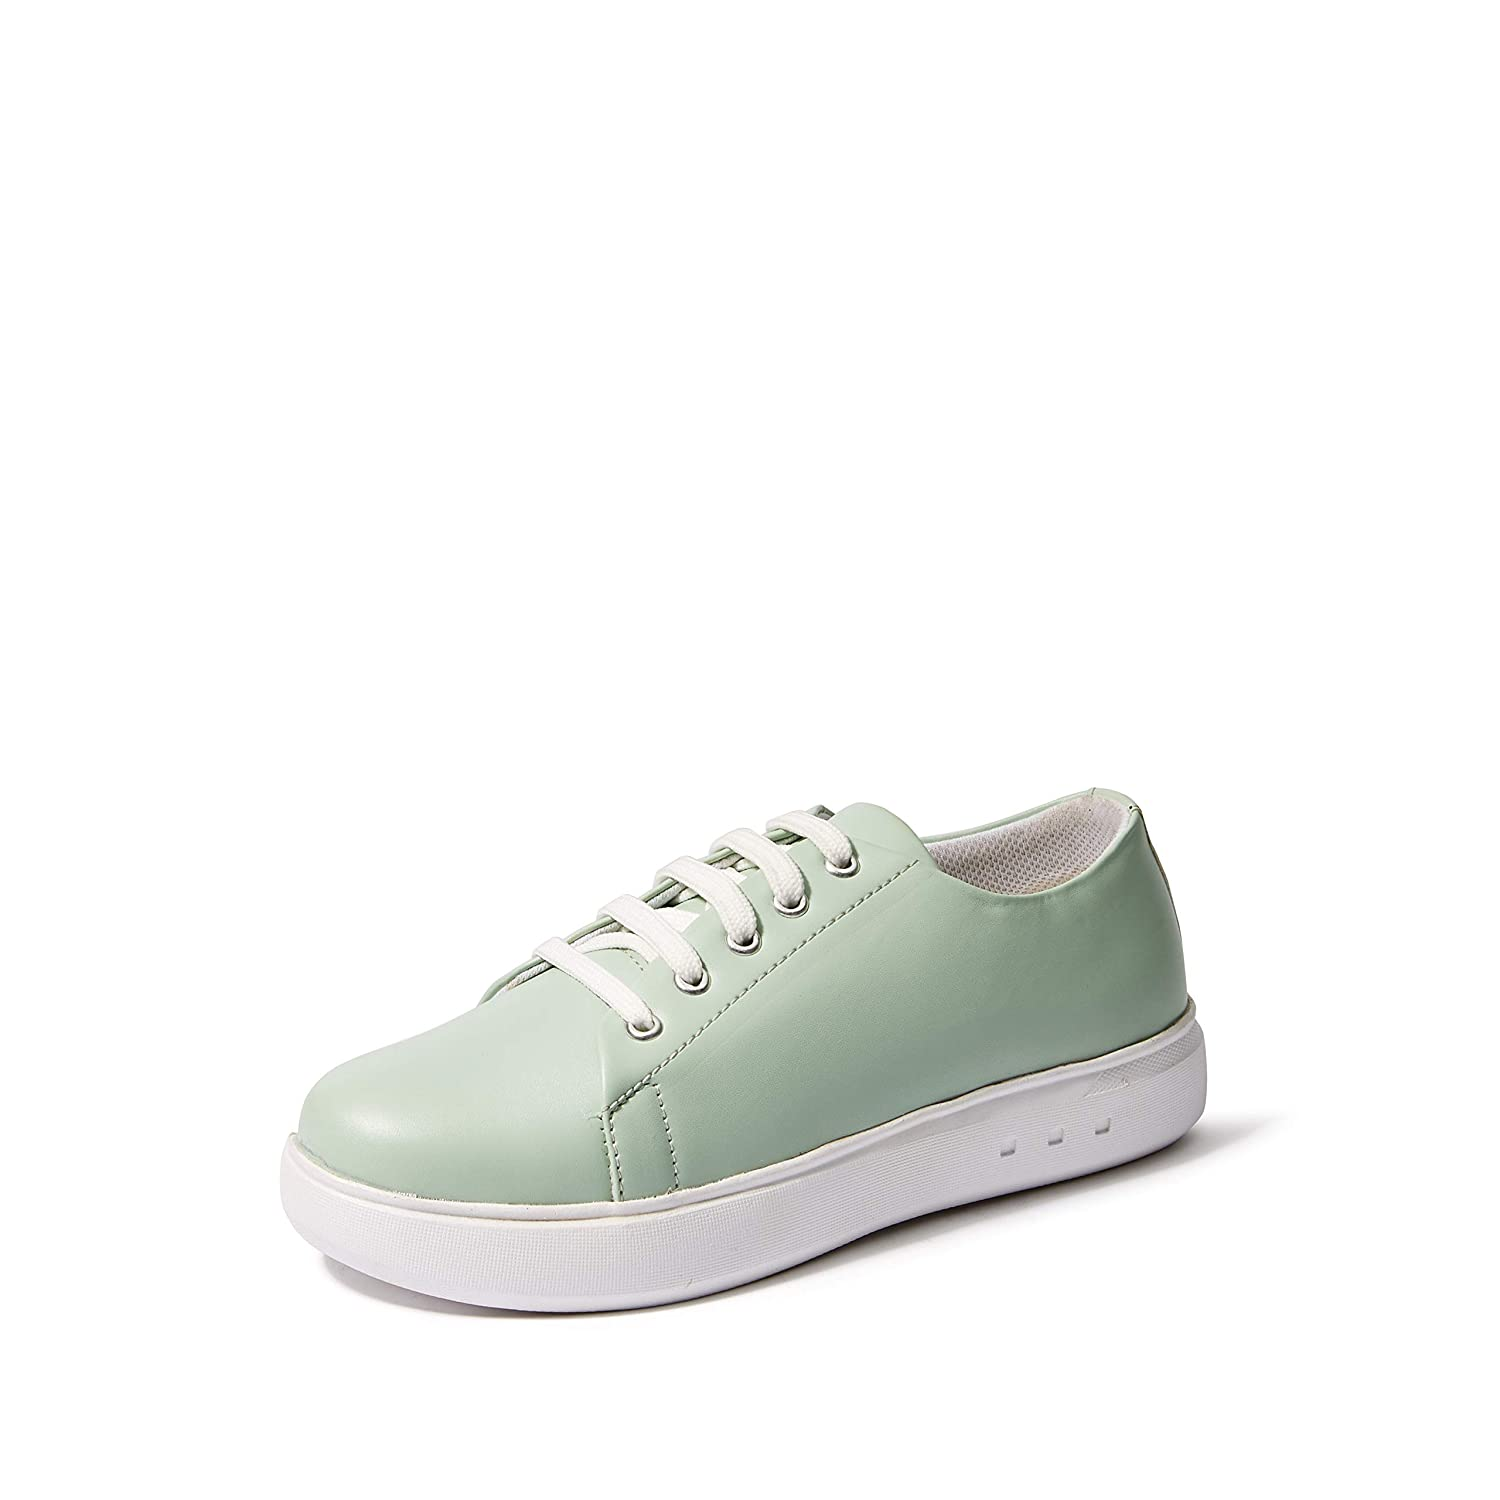 Centrino Women's Sneakers